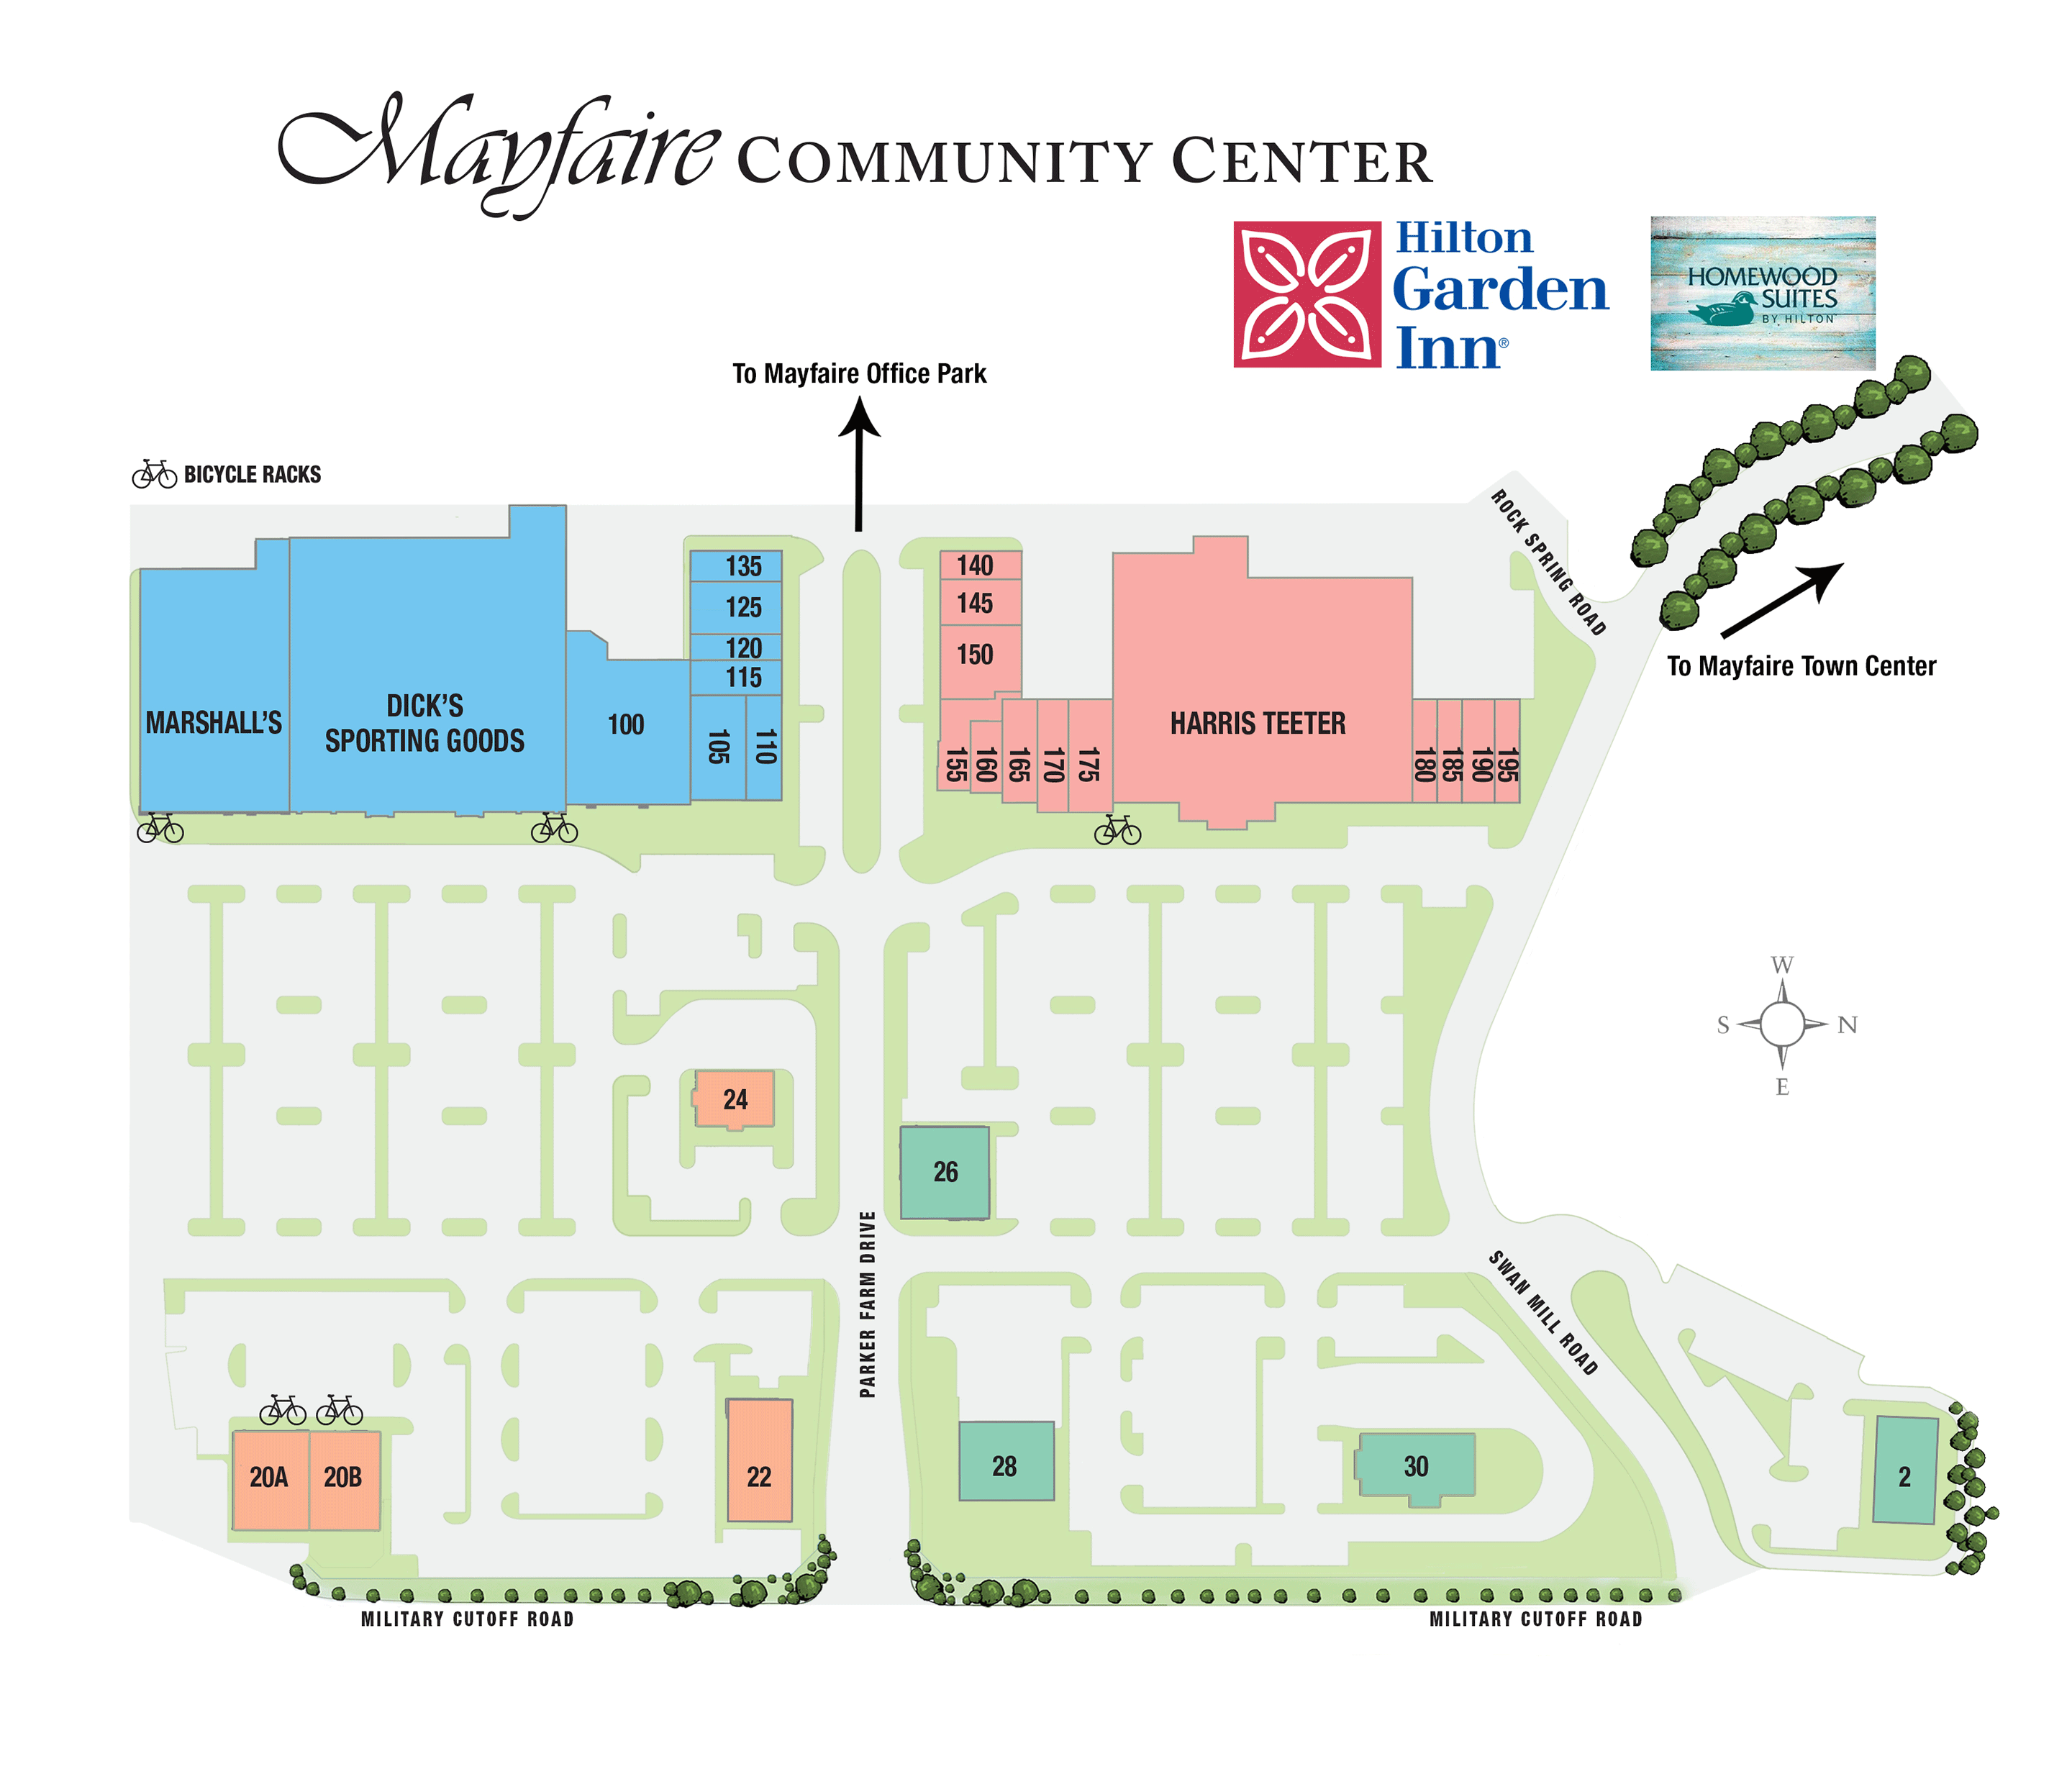 Mayfaire Community Center directory map